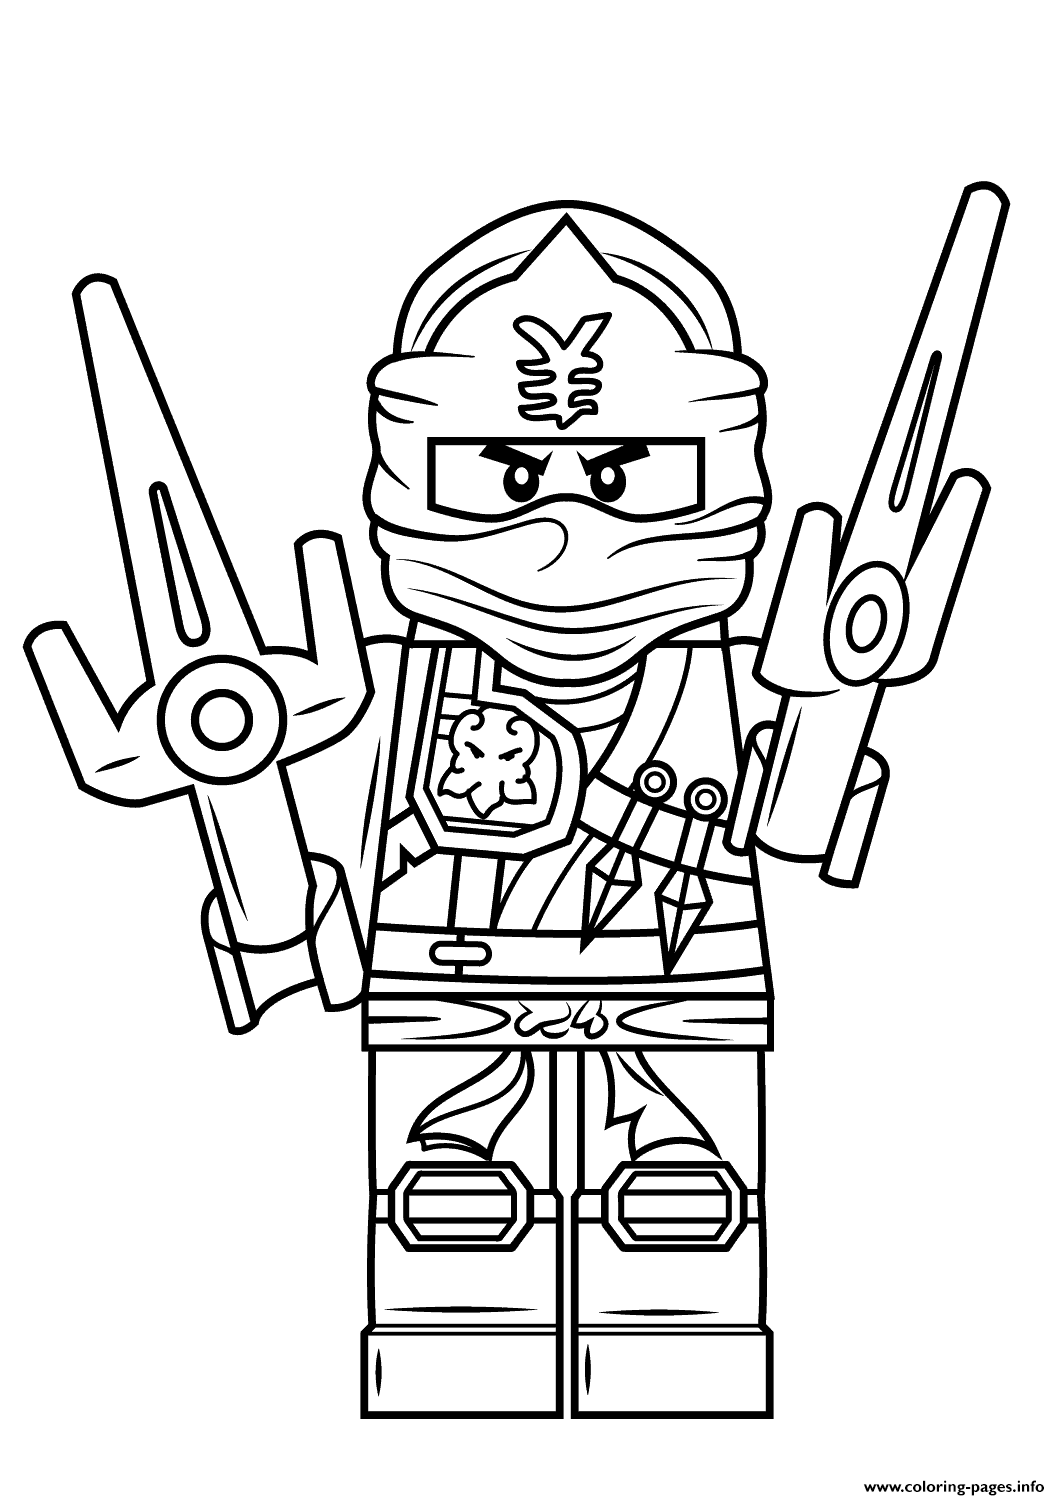 Lego Ninjago Jay Coloring Pages